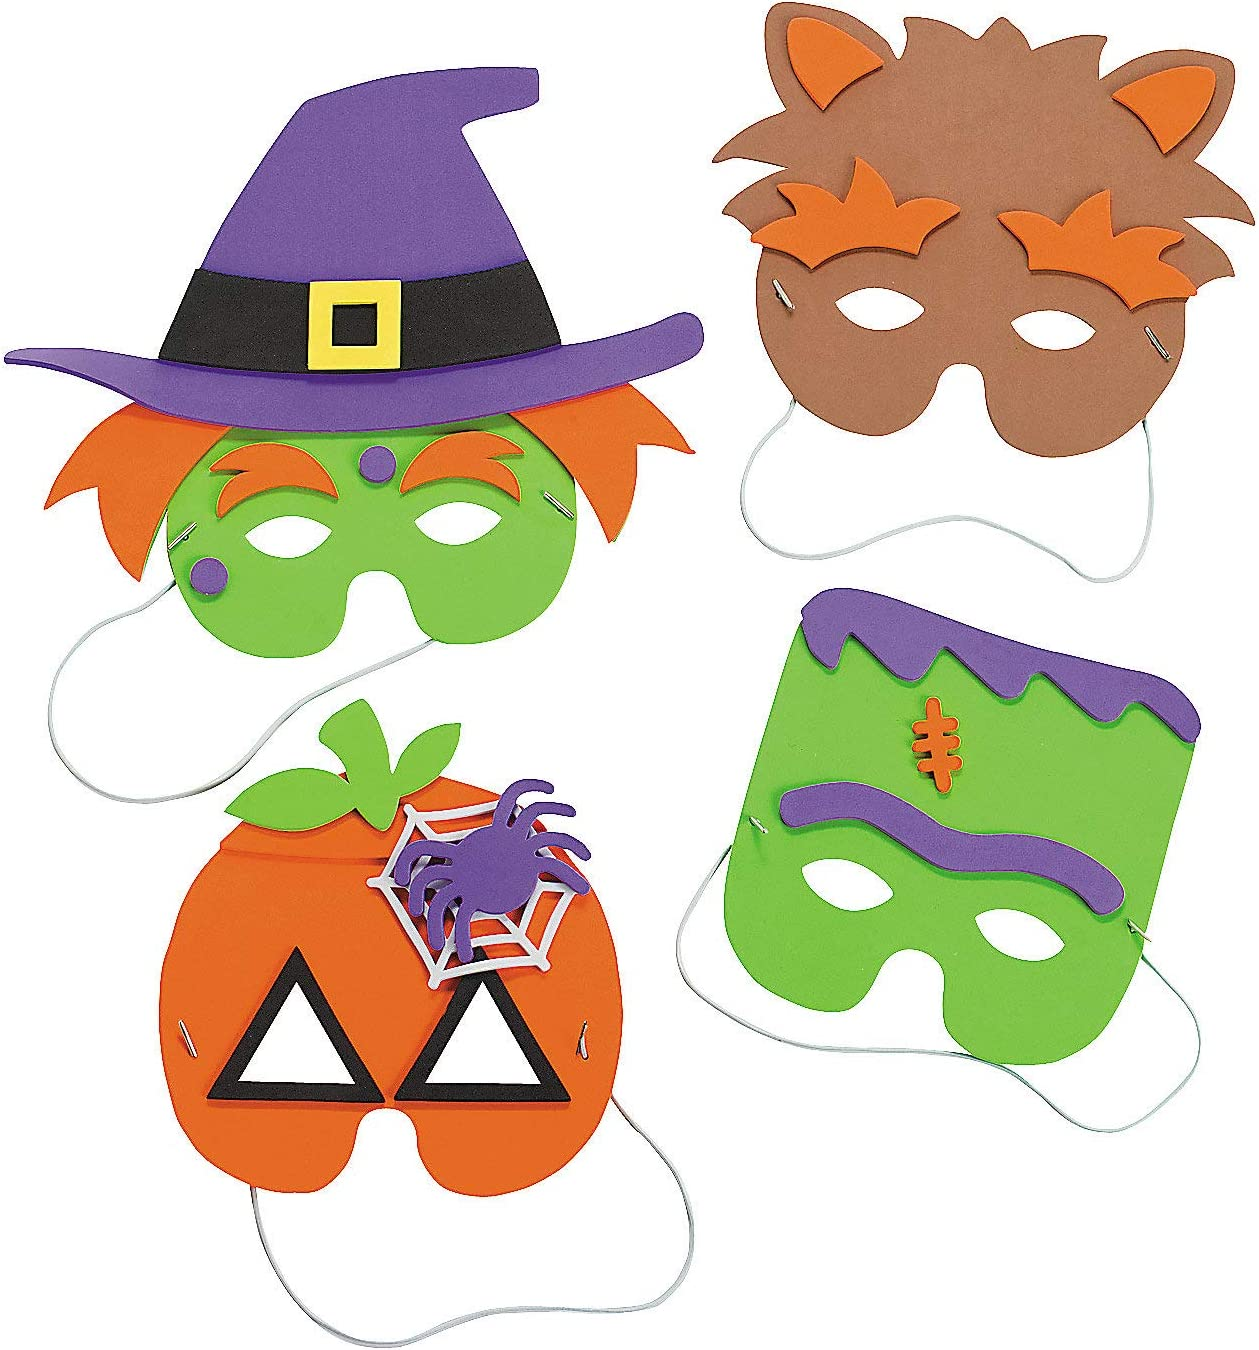 Amazon.com: Halloween Mask Craft Kit - Crafts for Kids & Hats ...